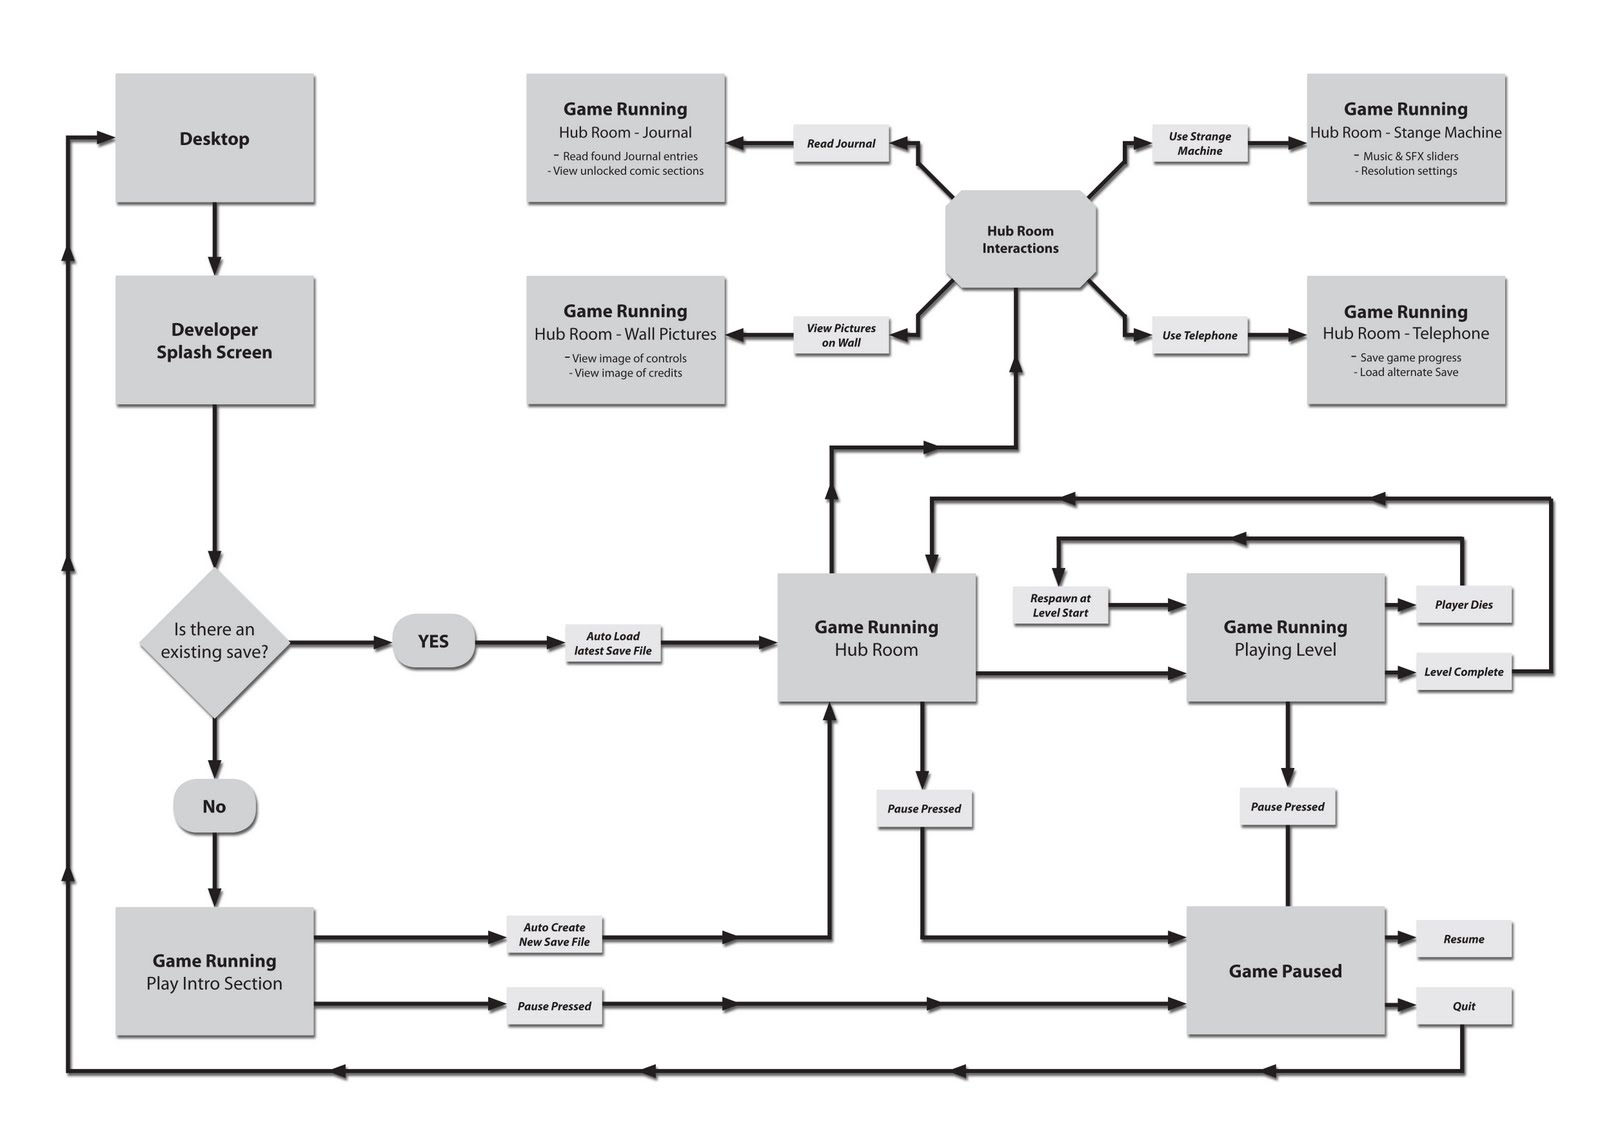 Barryhevans game design blog start menu flow chart v2 this version has all menu screens integrated into the game world the start screen has also now gone with the game launching straight into gameplay nvjuhfo Choice Image